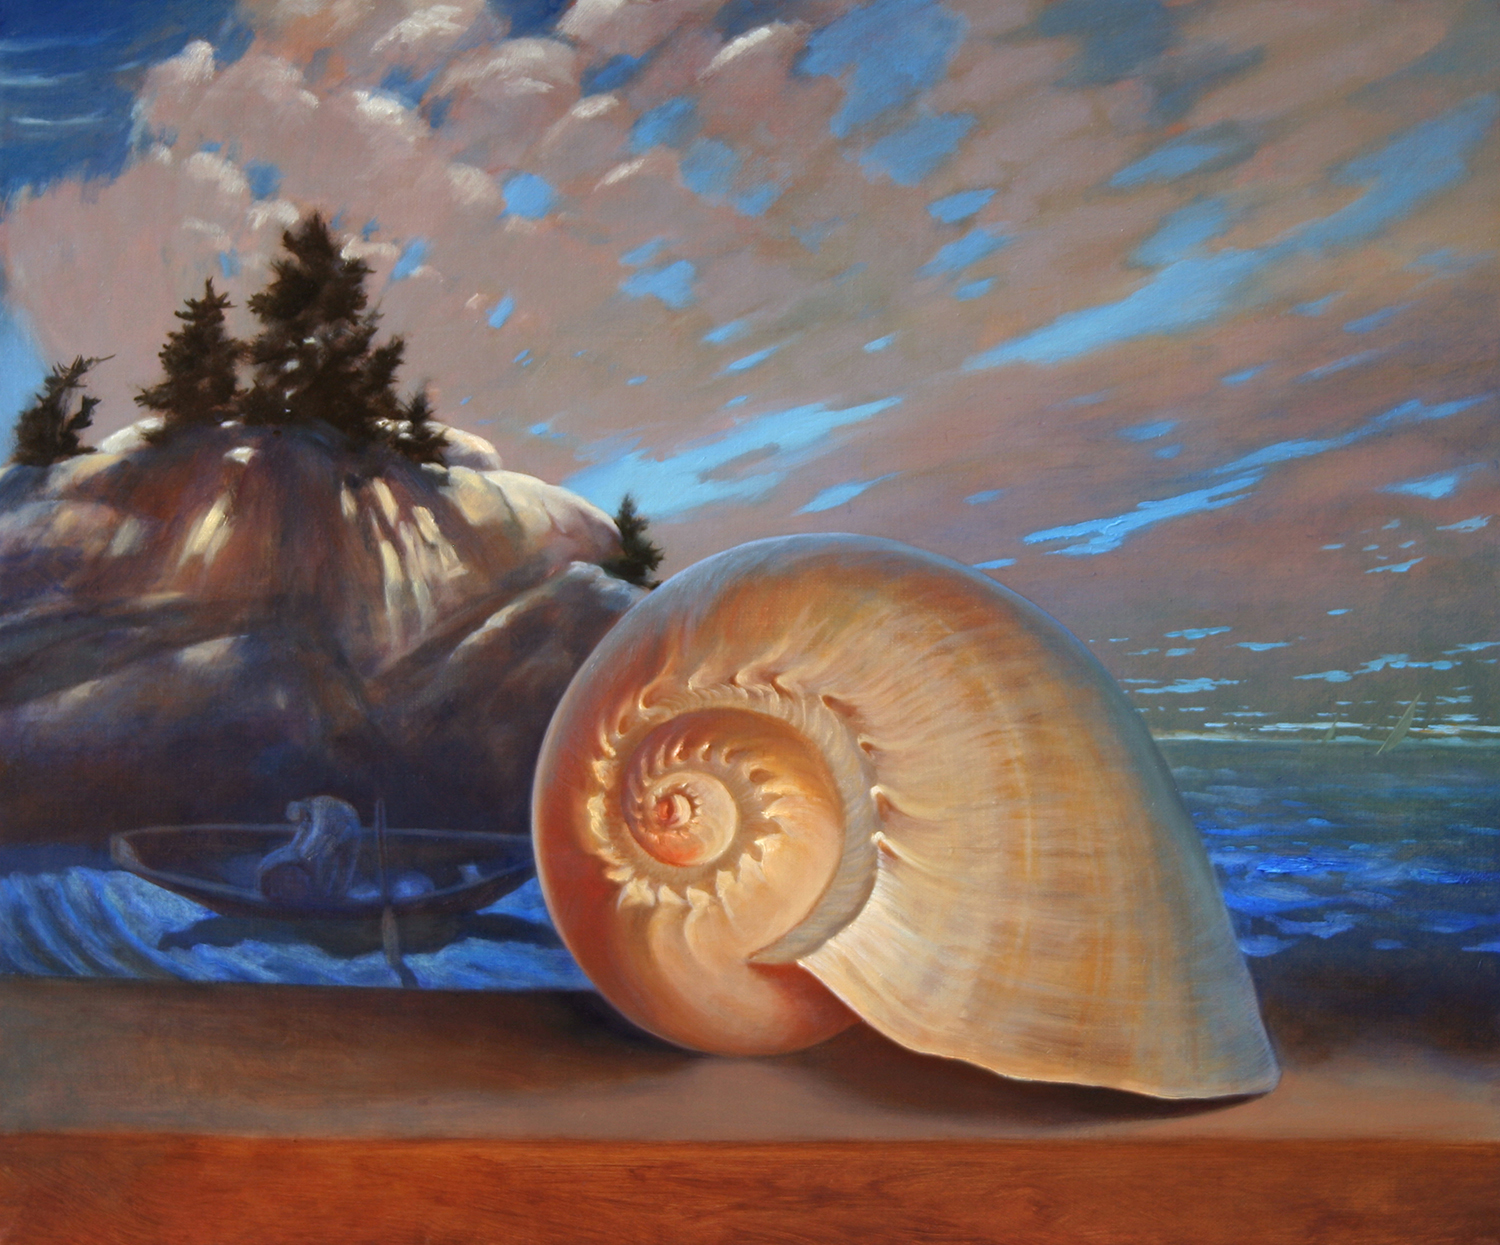 "N.C.W. and Shell 18"" x 24"" 2006, oil on linen"